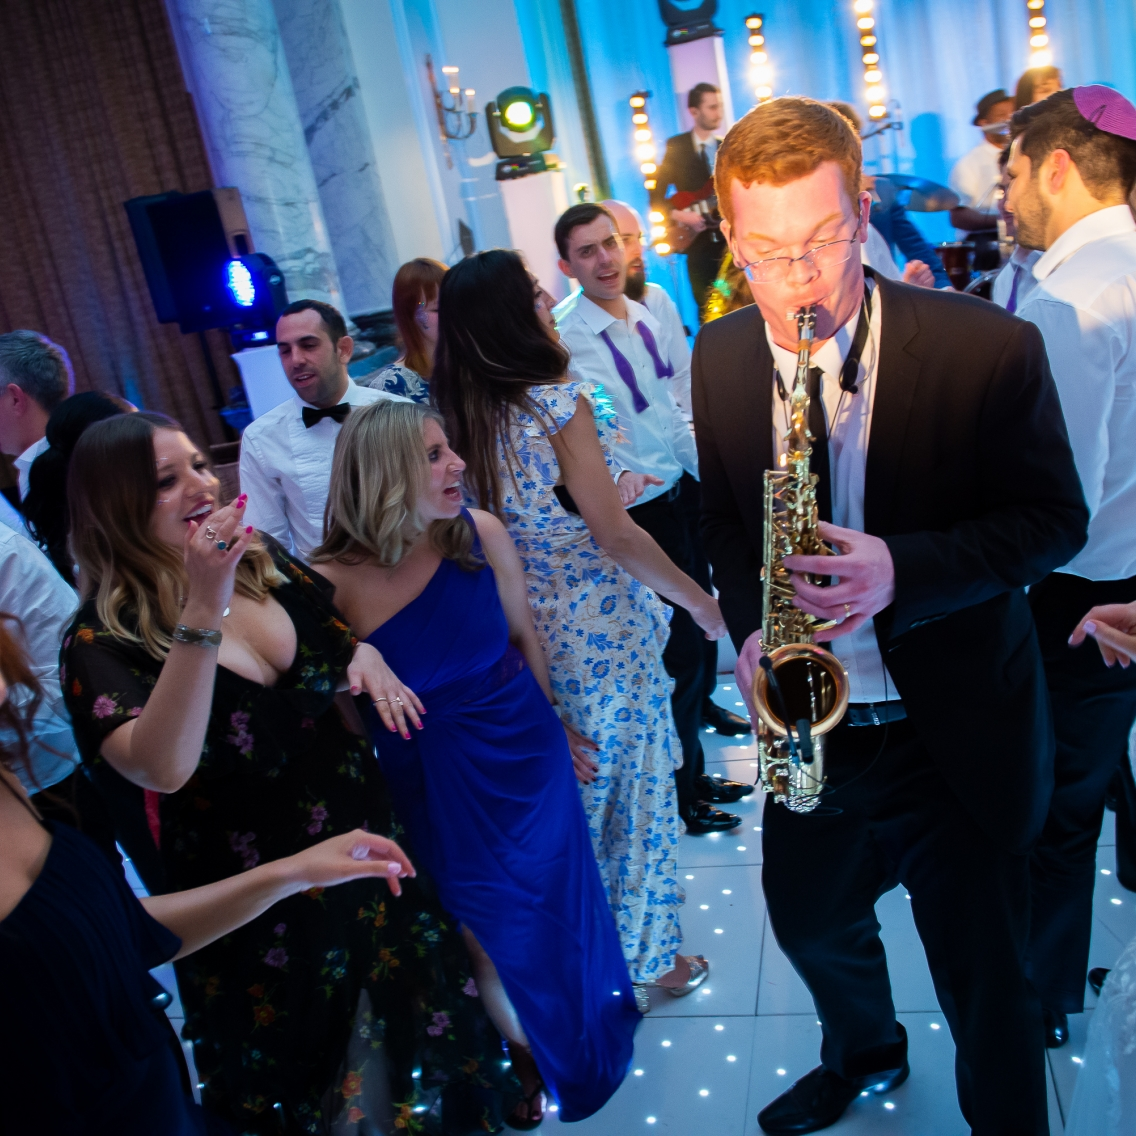 Saxophonist on the Dance Floor